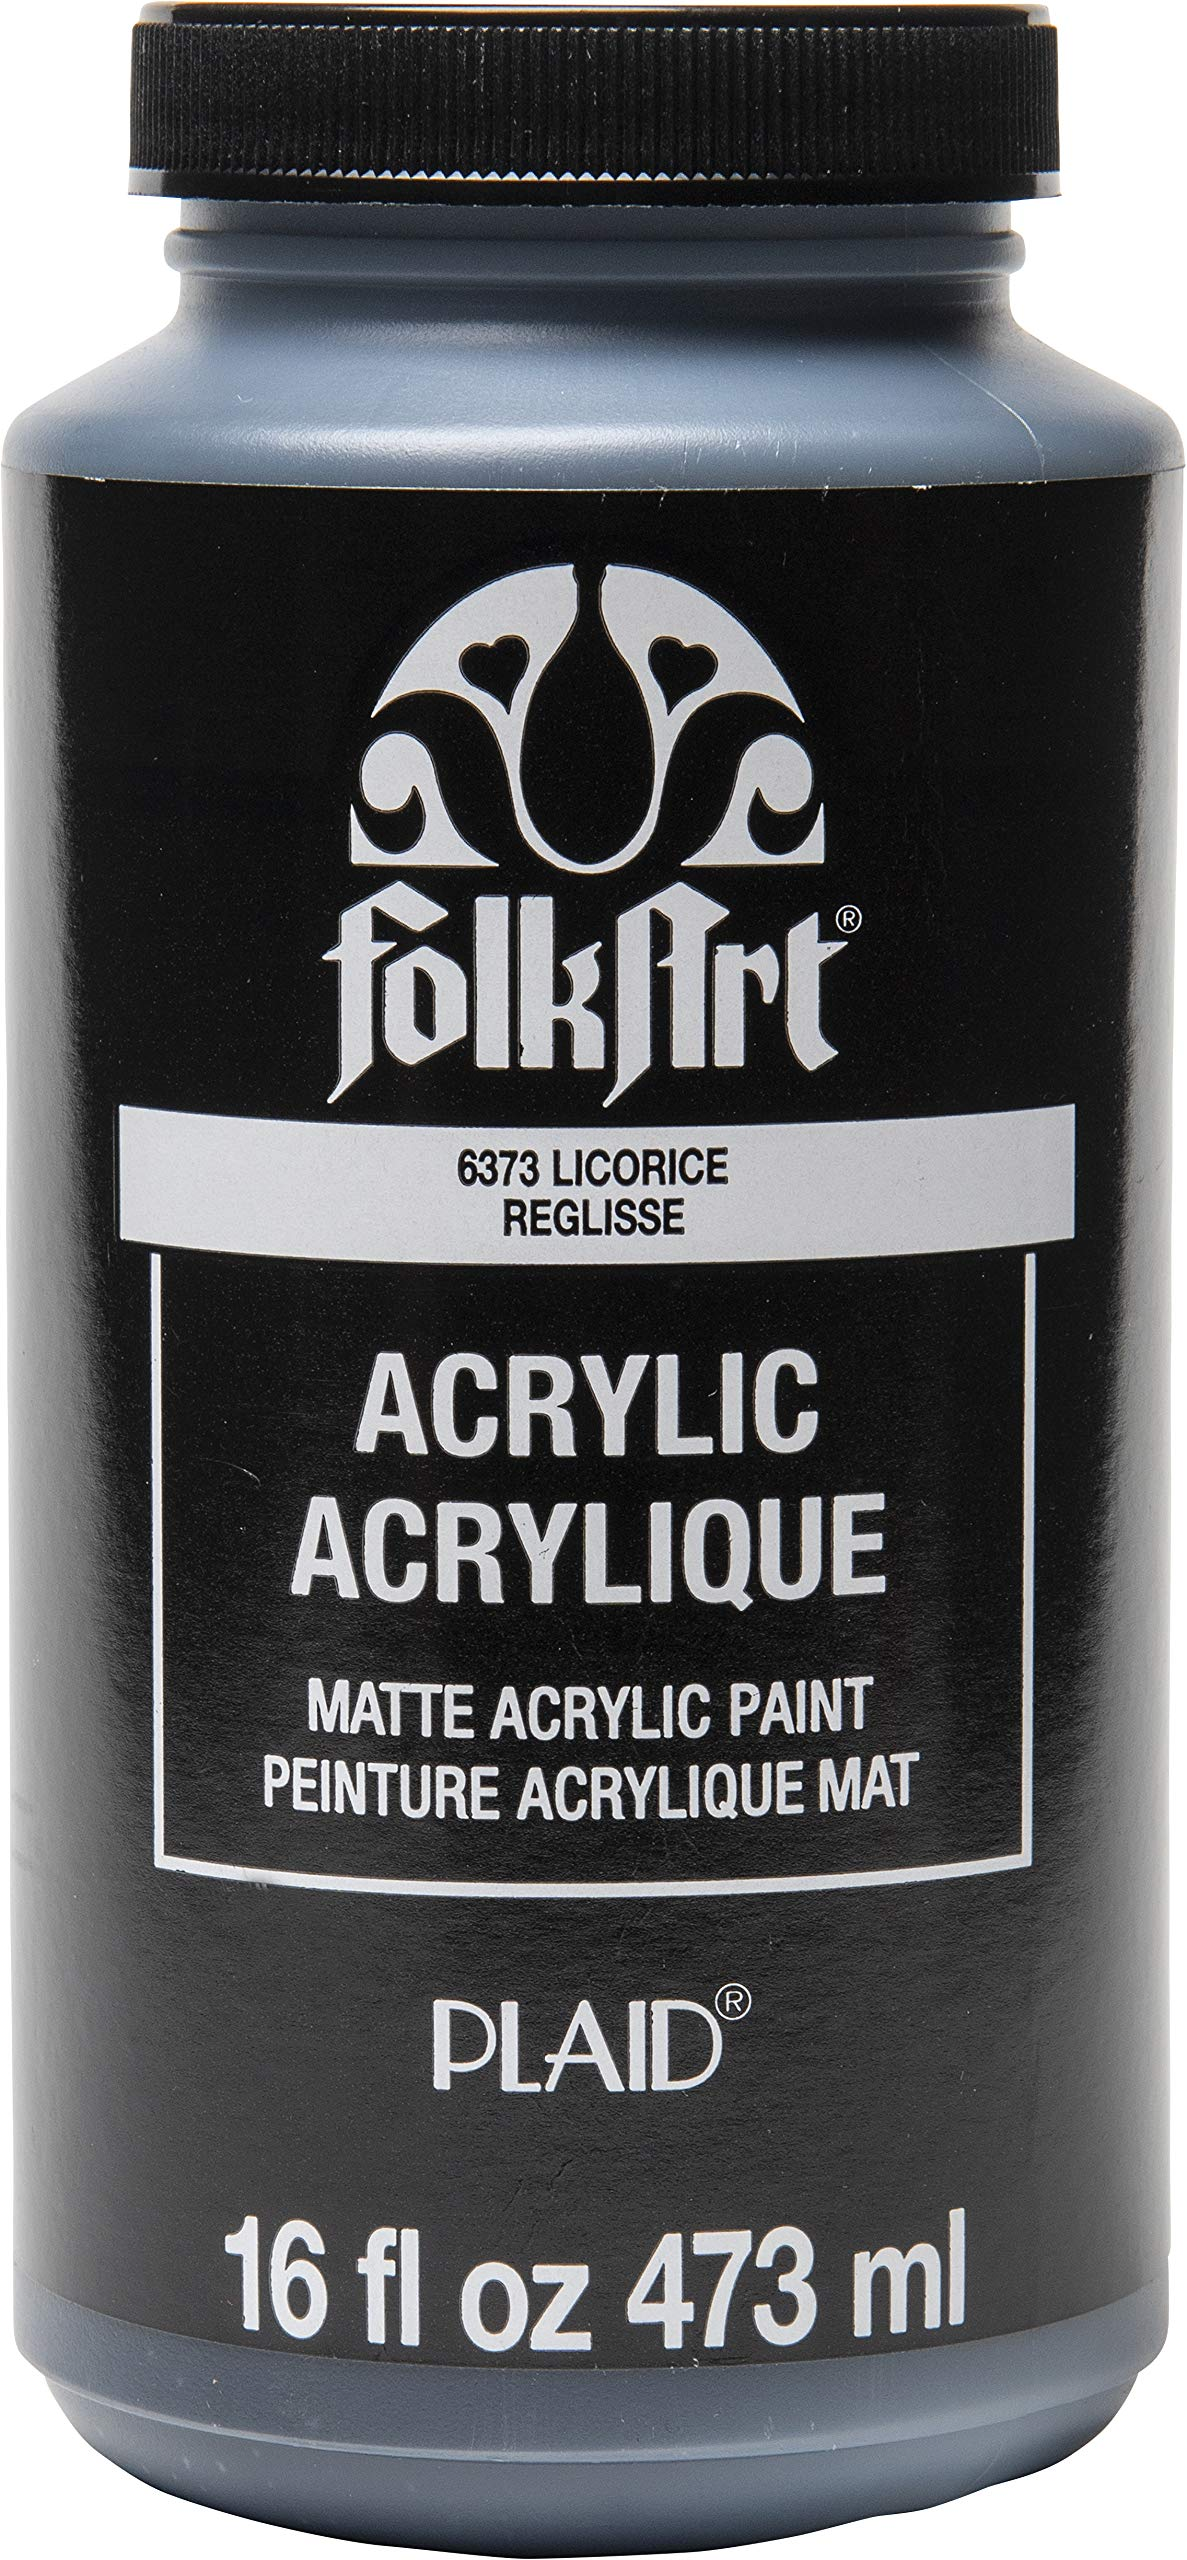 FolkArt 6373 Matte Acrylic Paint in Assorted Colors, 16 oz, Licorice 16 Fl Oz